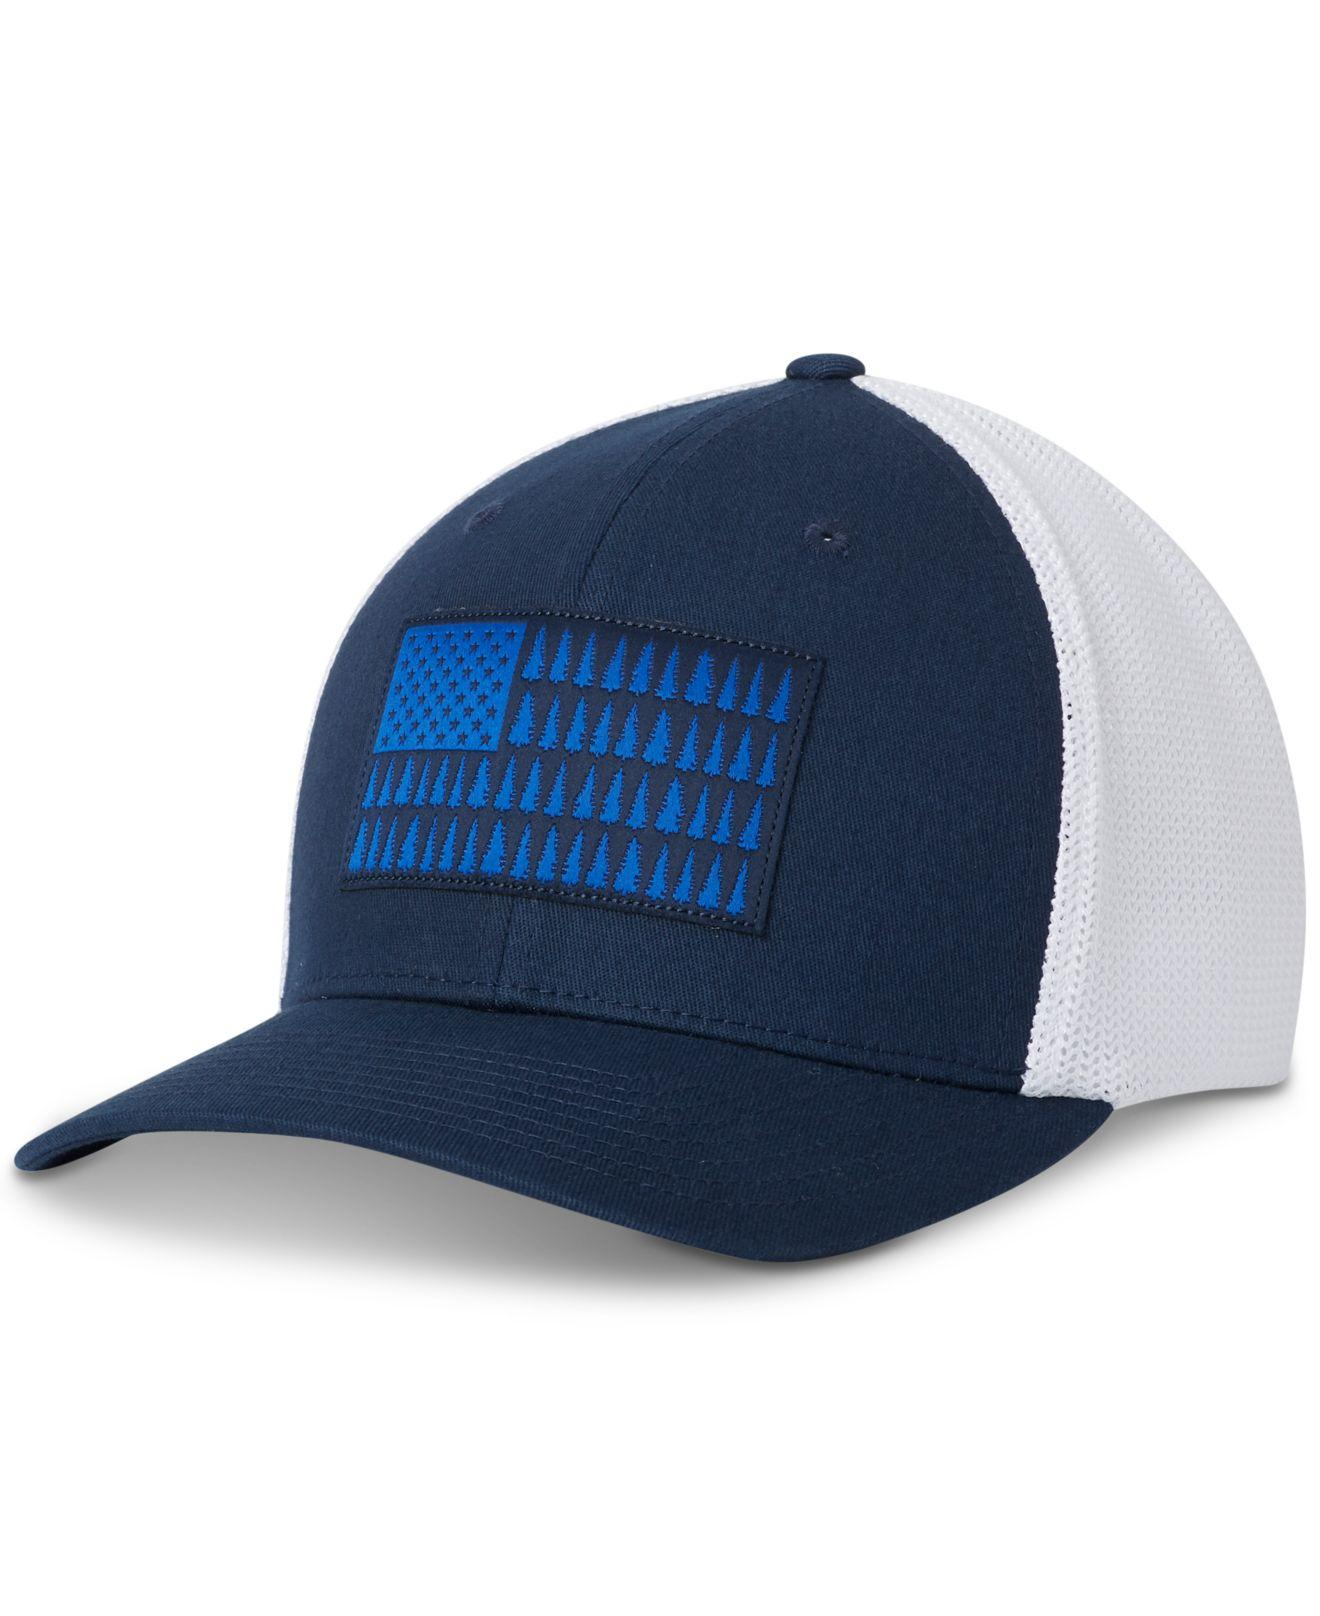 Lyst - Columbia Graphic Hat in Blue for Men 99bdb8f714a1